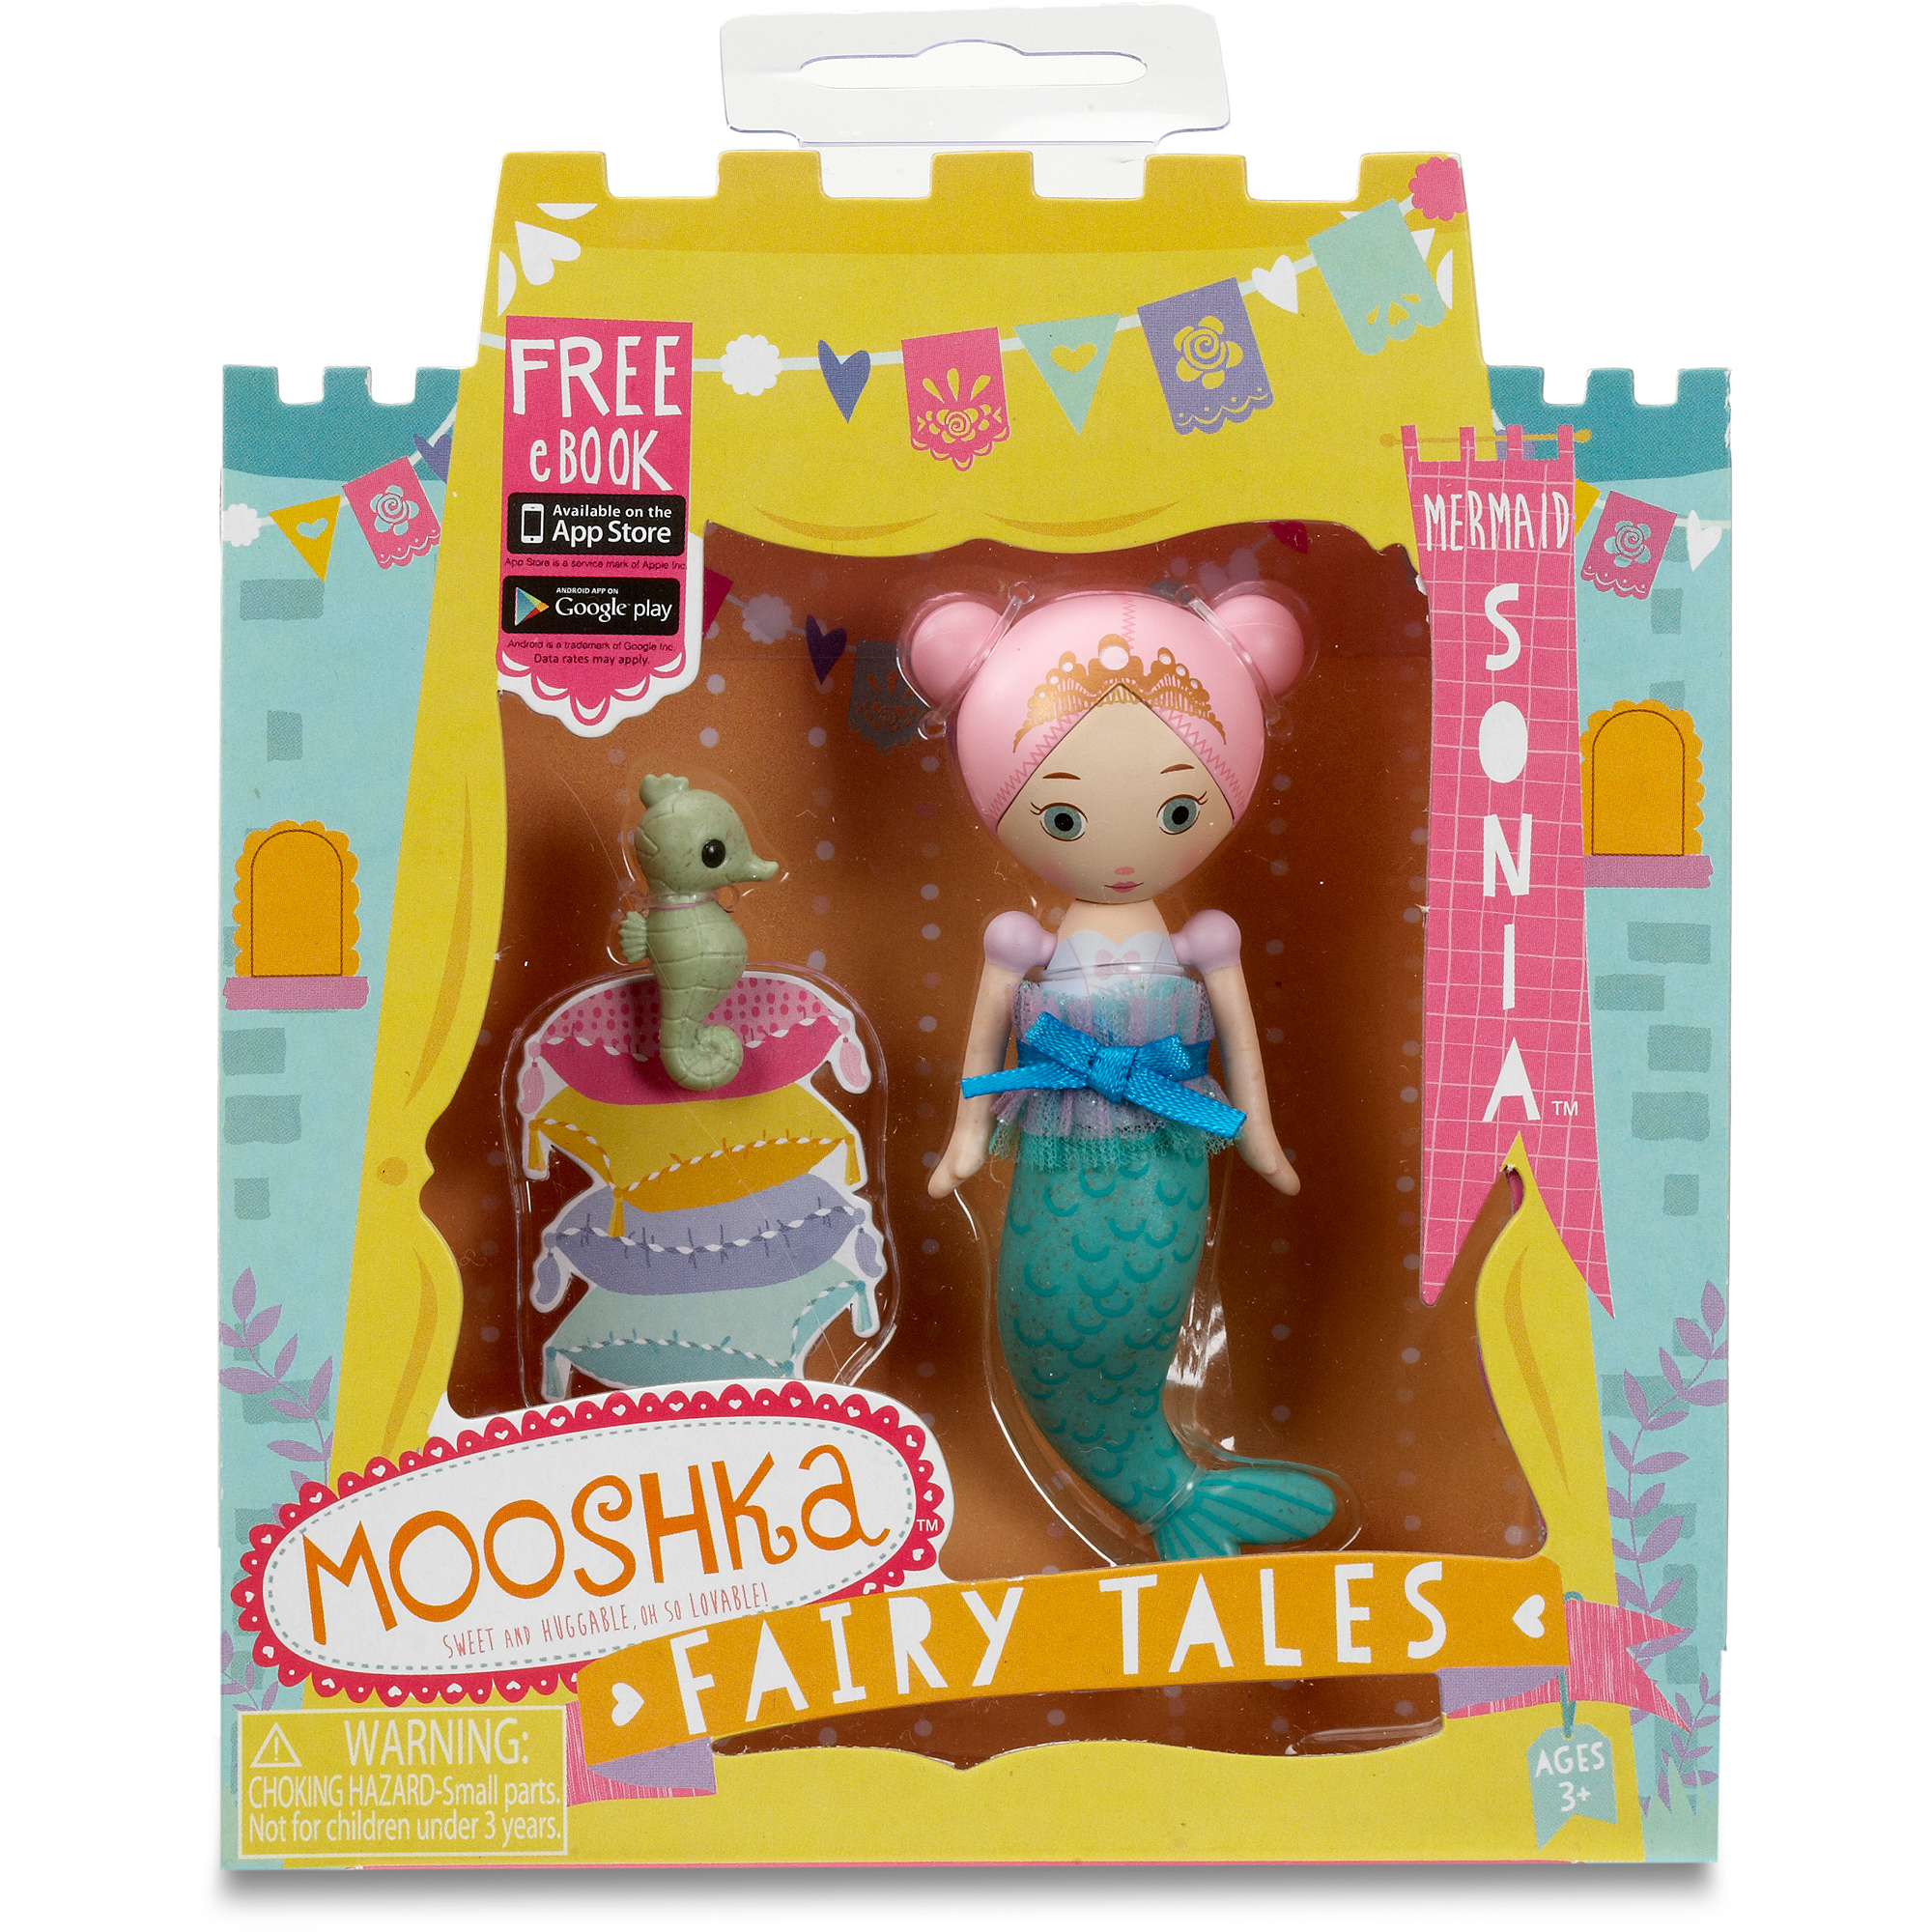 Mooshka Miniature Fairytale Mermaid Sonia Doll